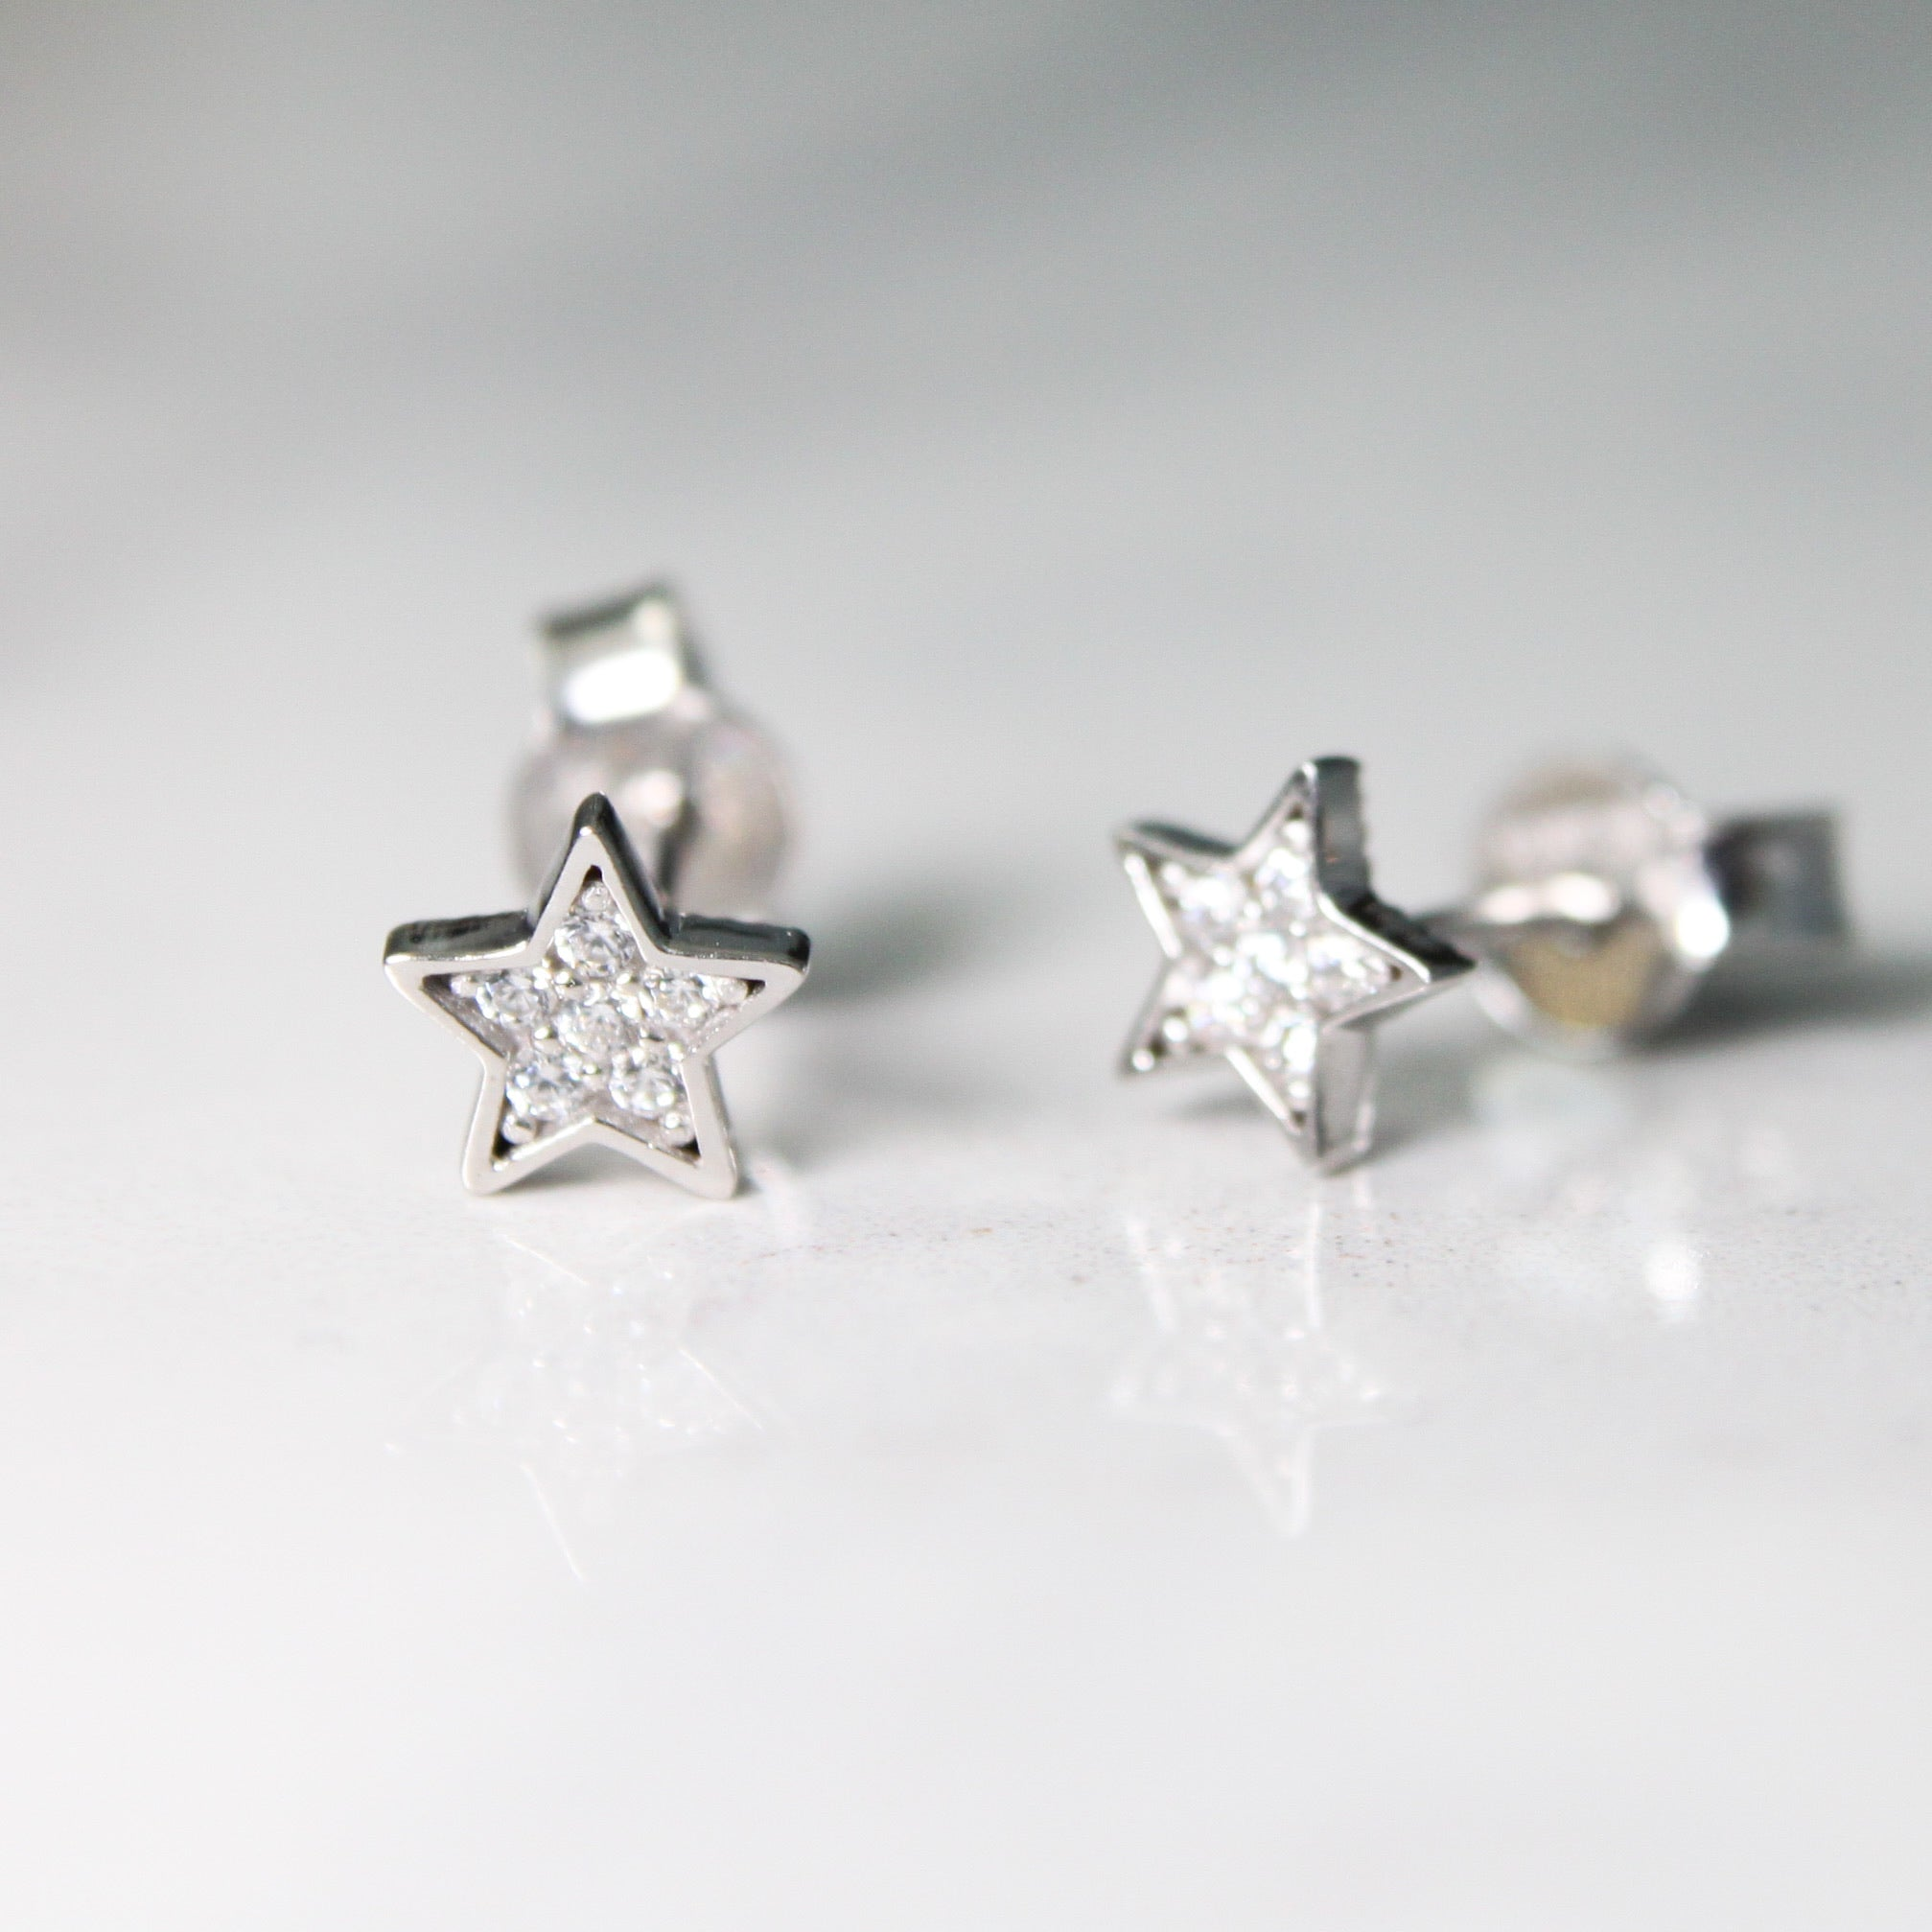 star earrings with cubics